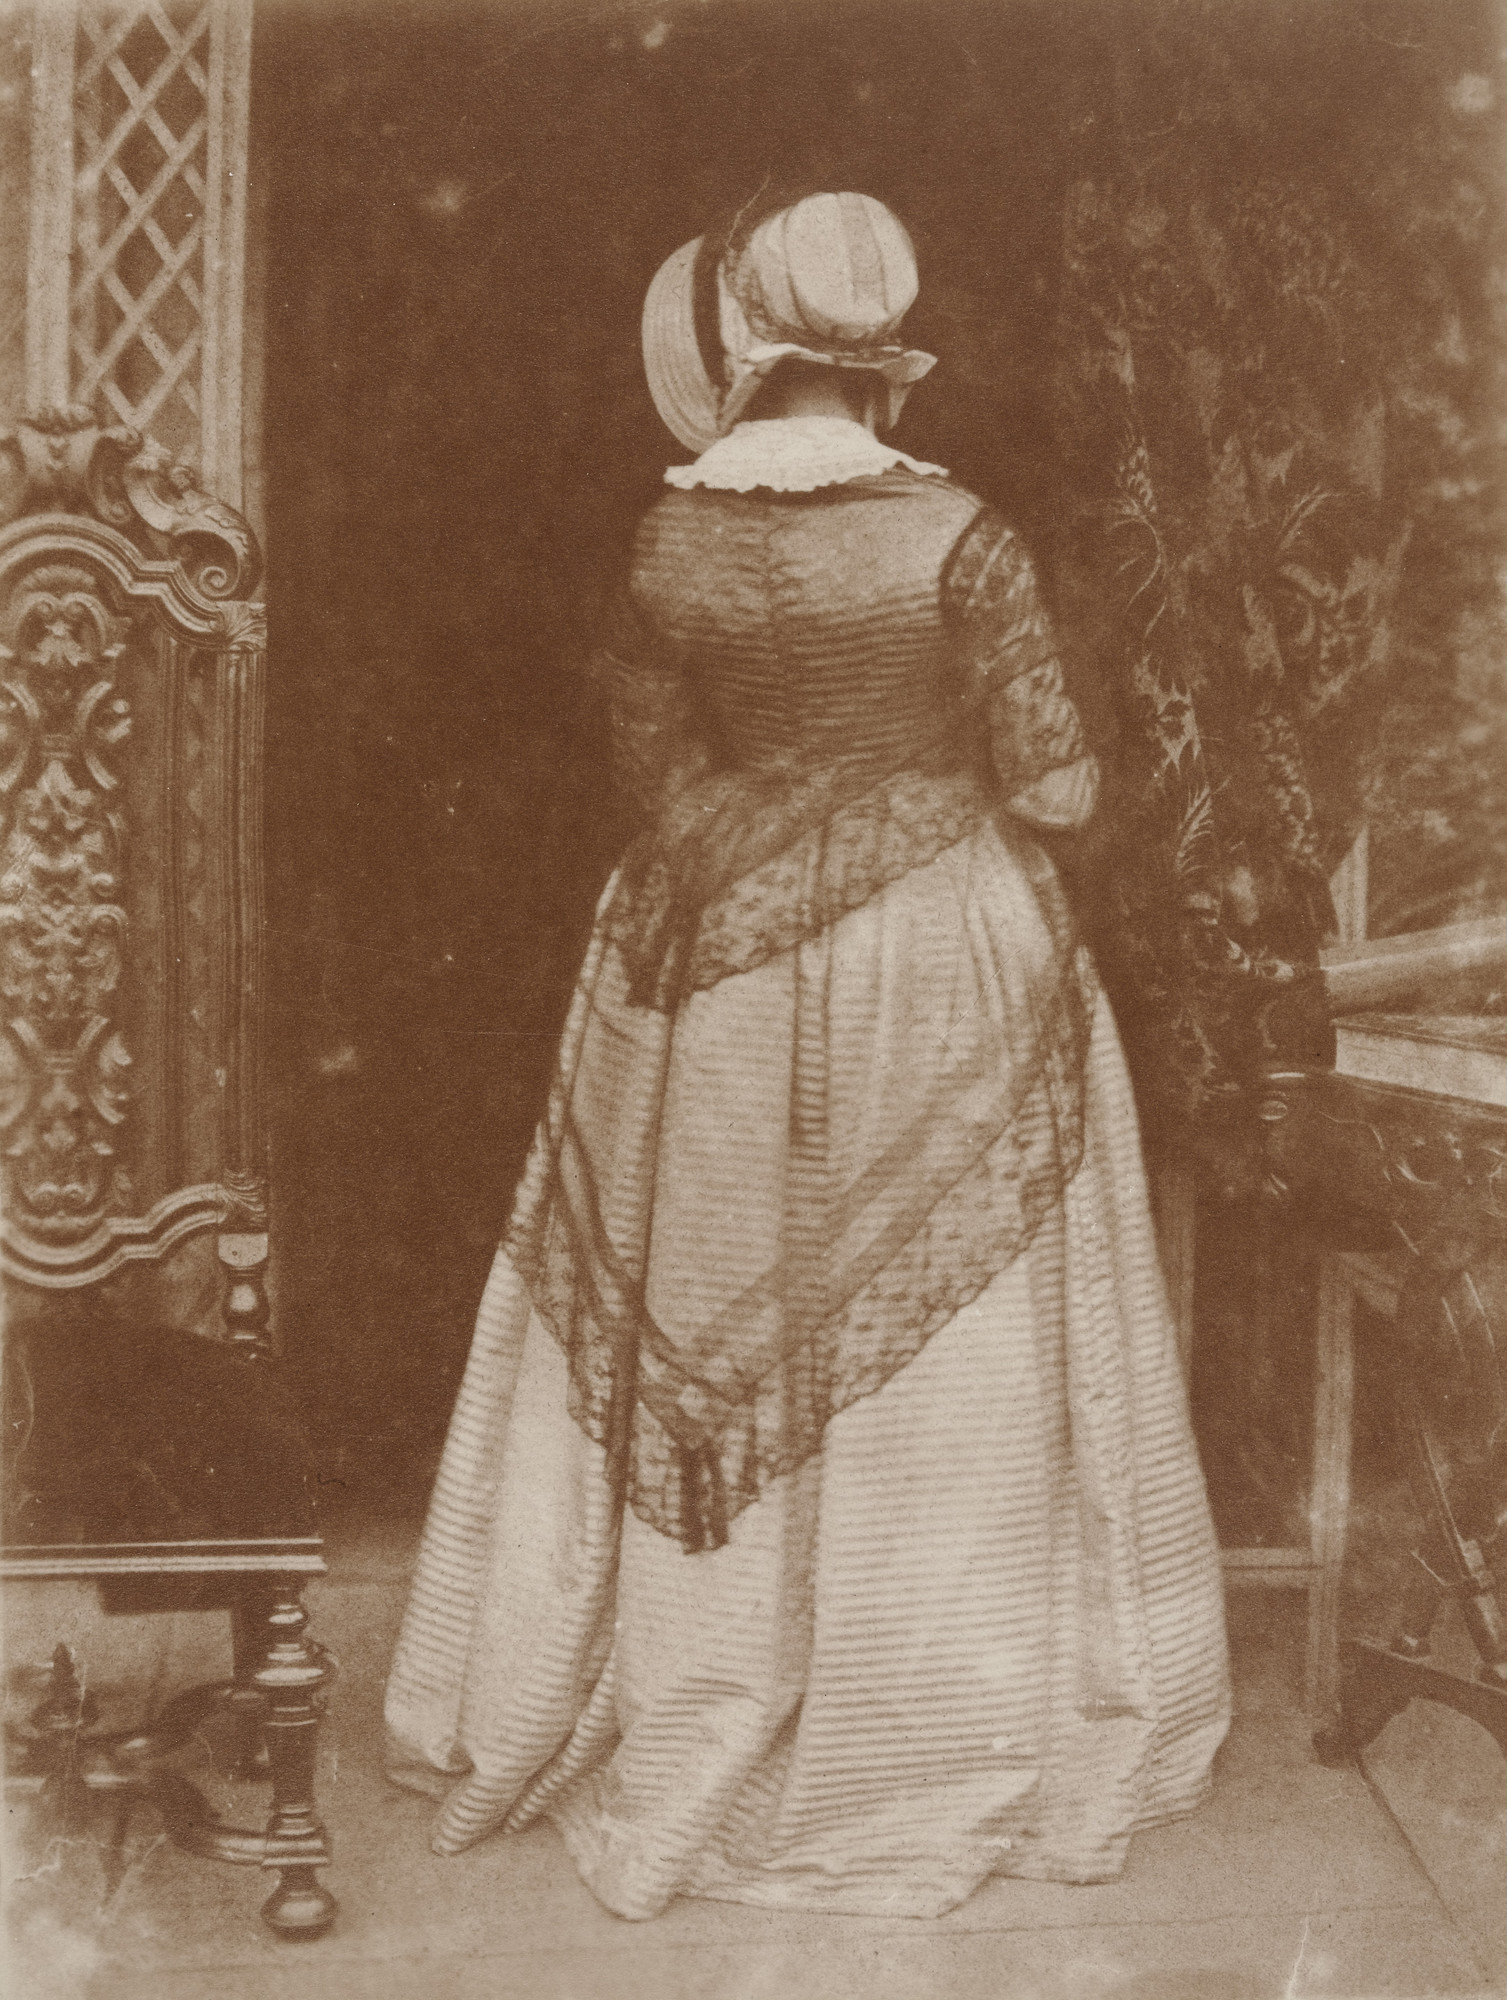 David Octavius Hill, Robert Adamson. Lady Mary Ruthven. c. 1845